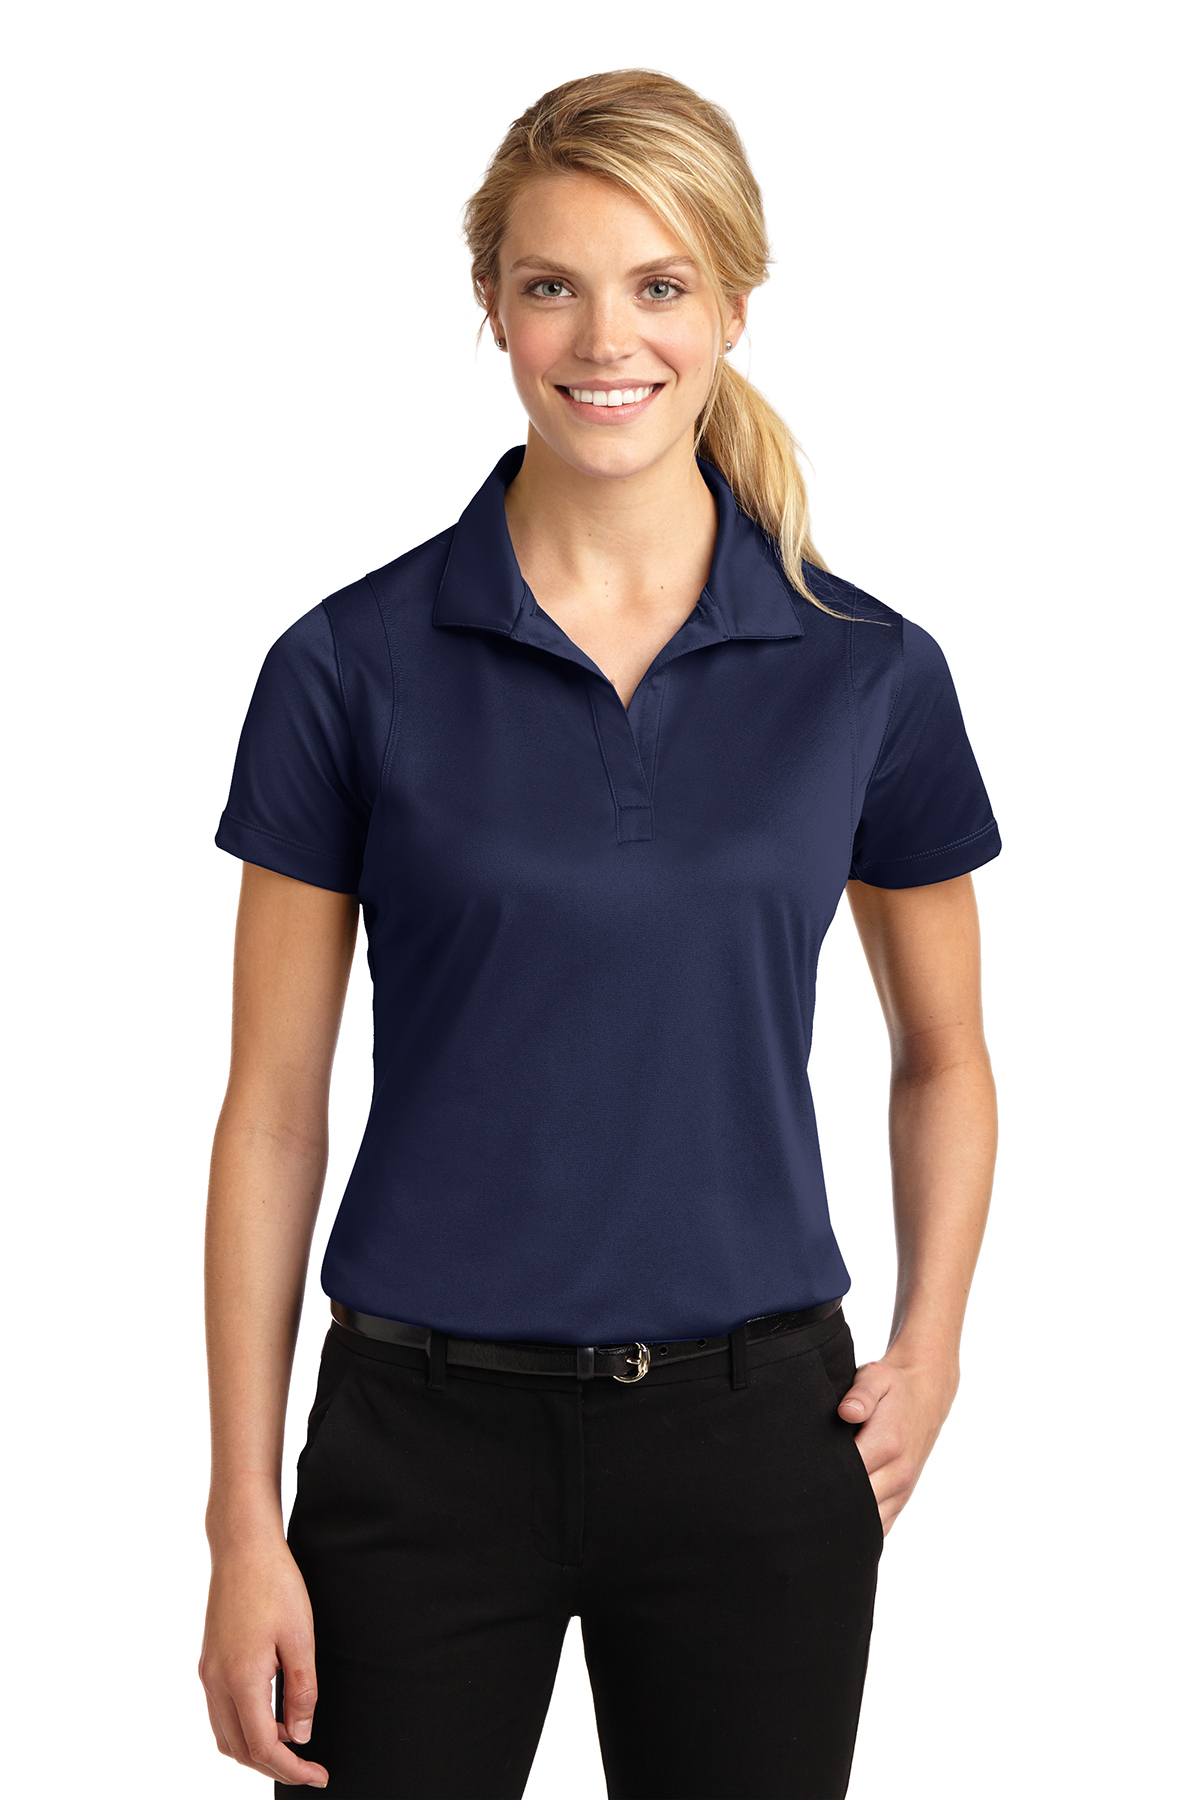 Sport Tek Ladies Micropique Sport Wick Polo Ladies Women Polos Knits Sanmar Smooth micropique polos that wick moisture and resist snags. sport tek ladies micropique sport wick